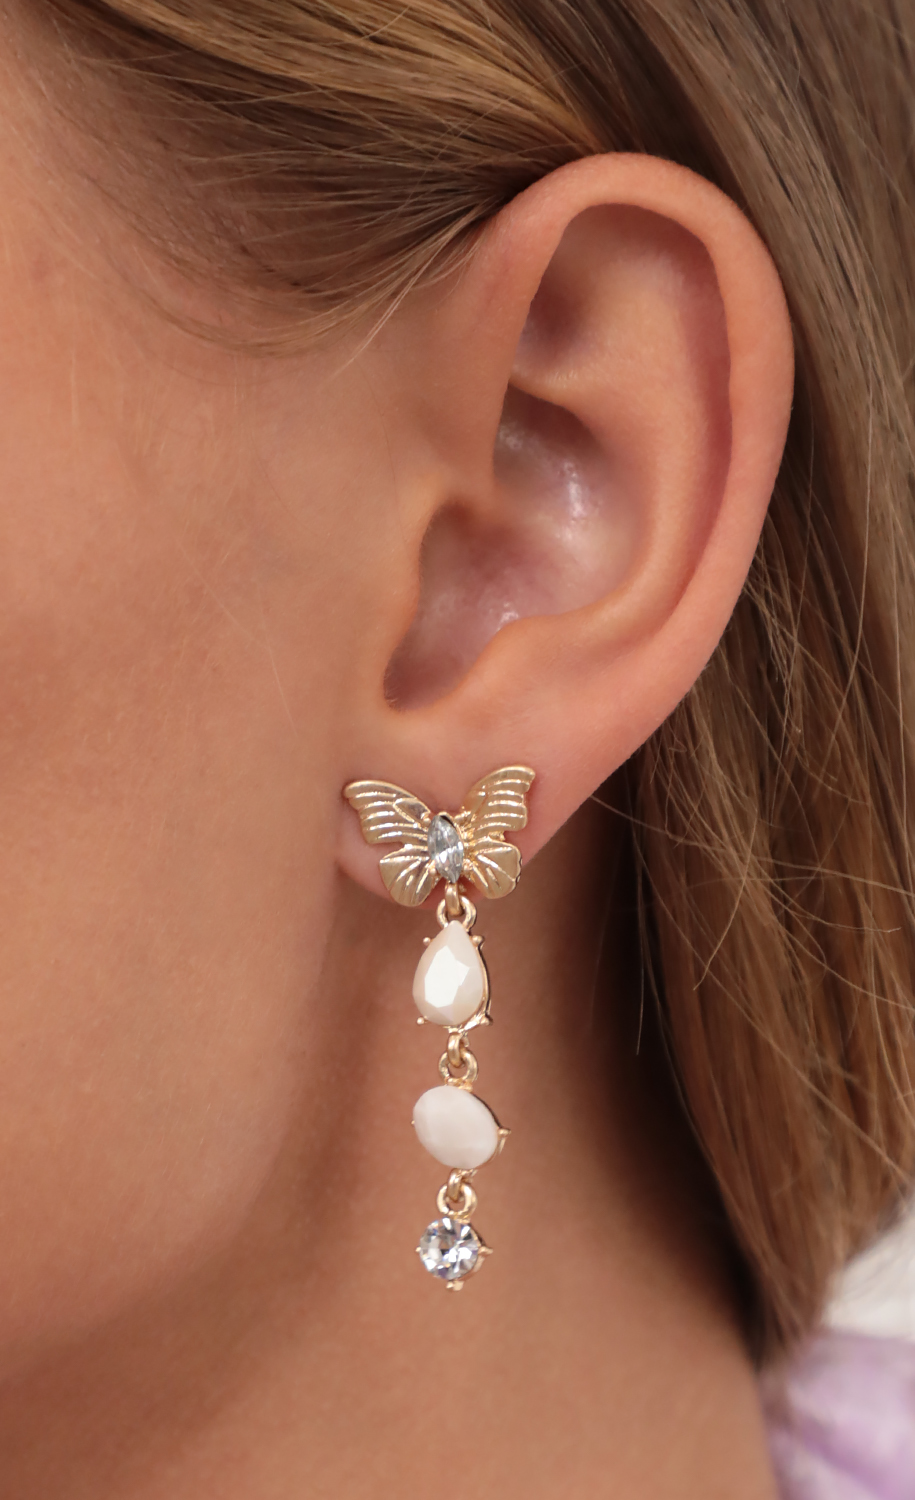 Butterfly Stud with Dangly Crystals